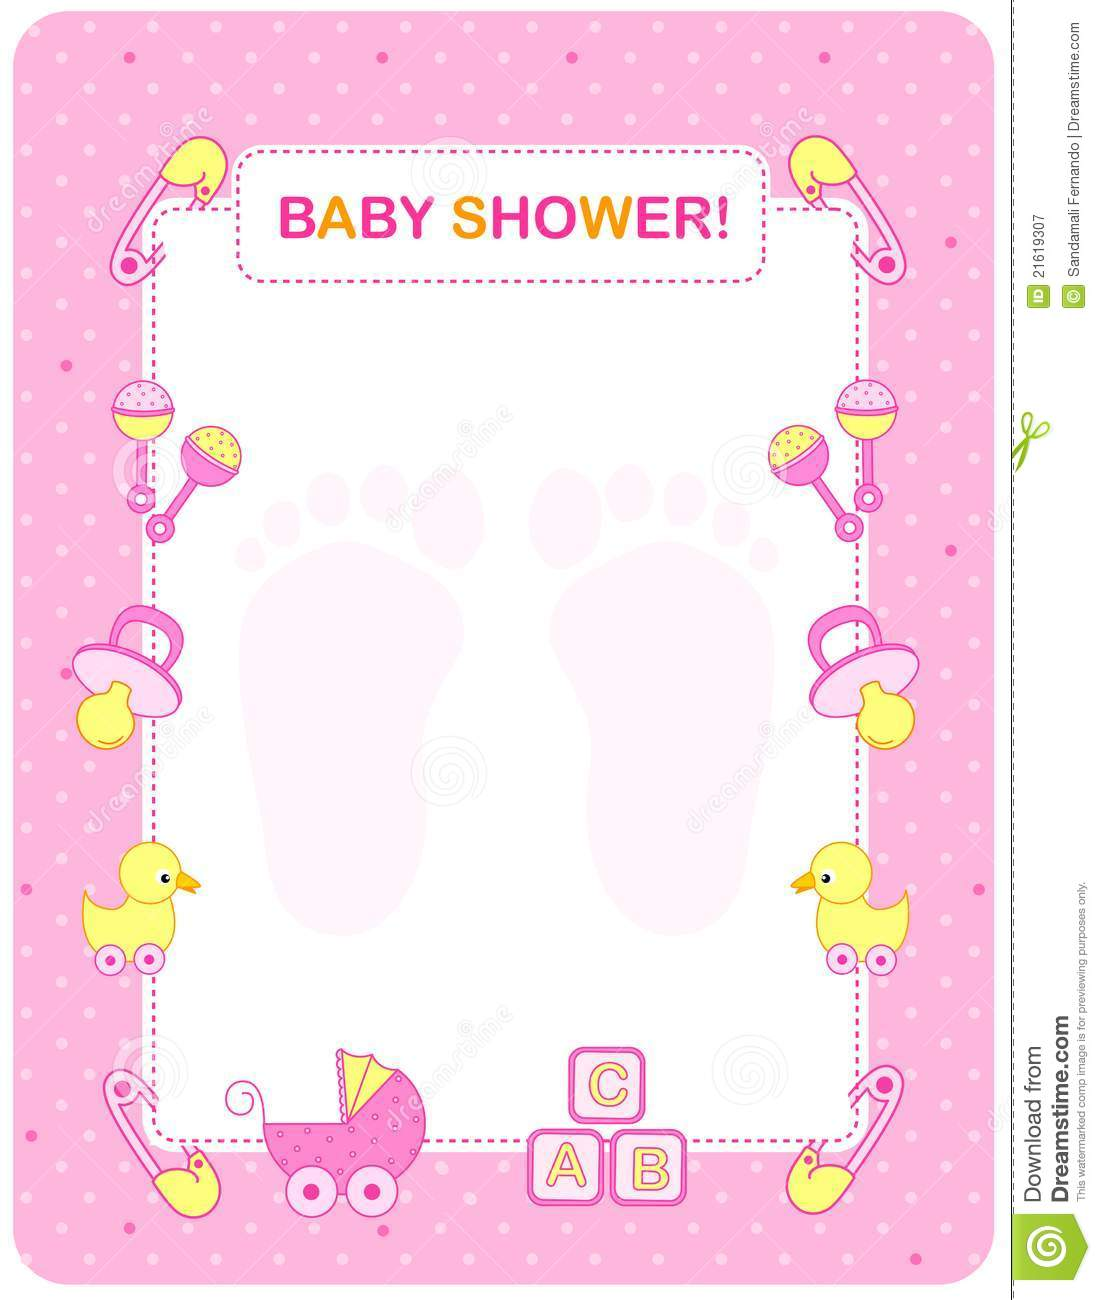 Baby Shower Card For Girls Royalty Free Stock Photography ...